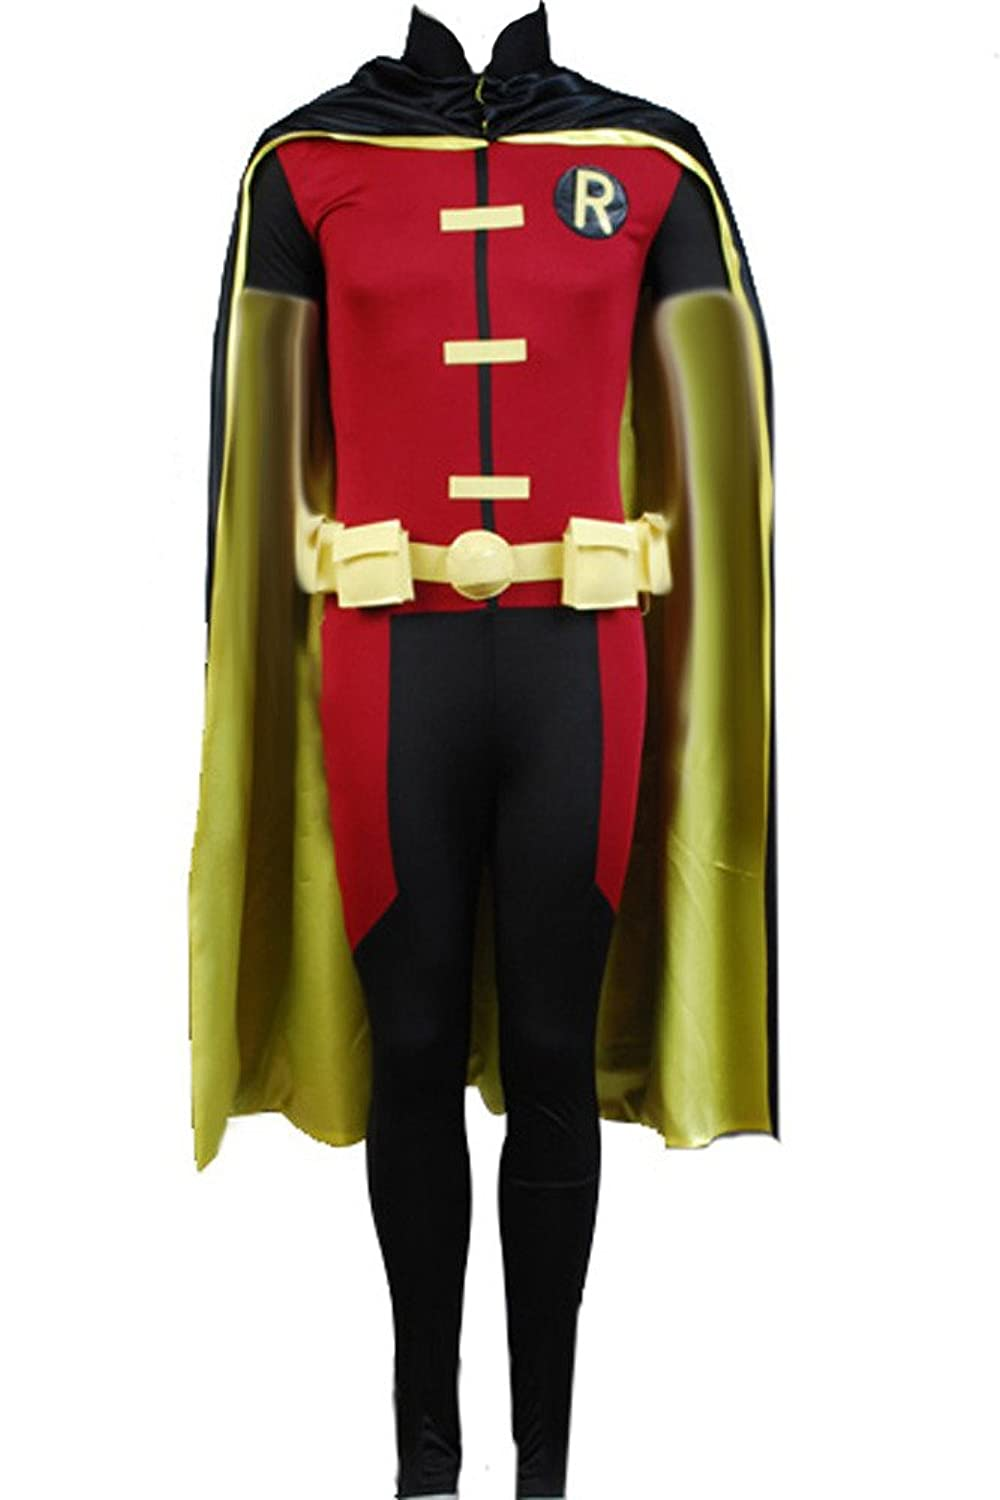 Amazon.com CosplaySky Young Justice Robin Cosplay Halloween Costume Clothing  sc 1 st  Amazon.com & Amazon.com: CosplaySky Young Justice Robin Cosplay Halloween Costume ...